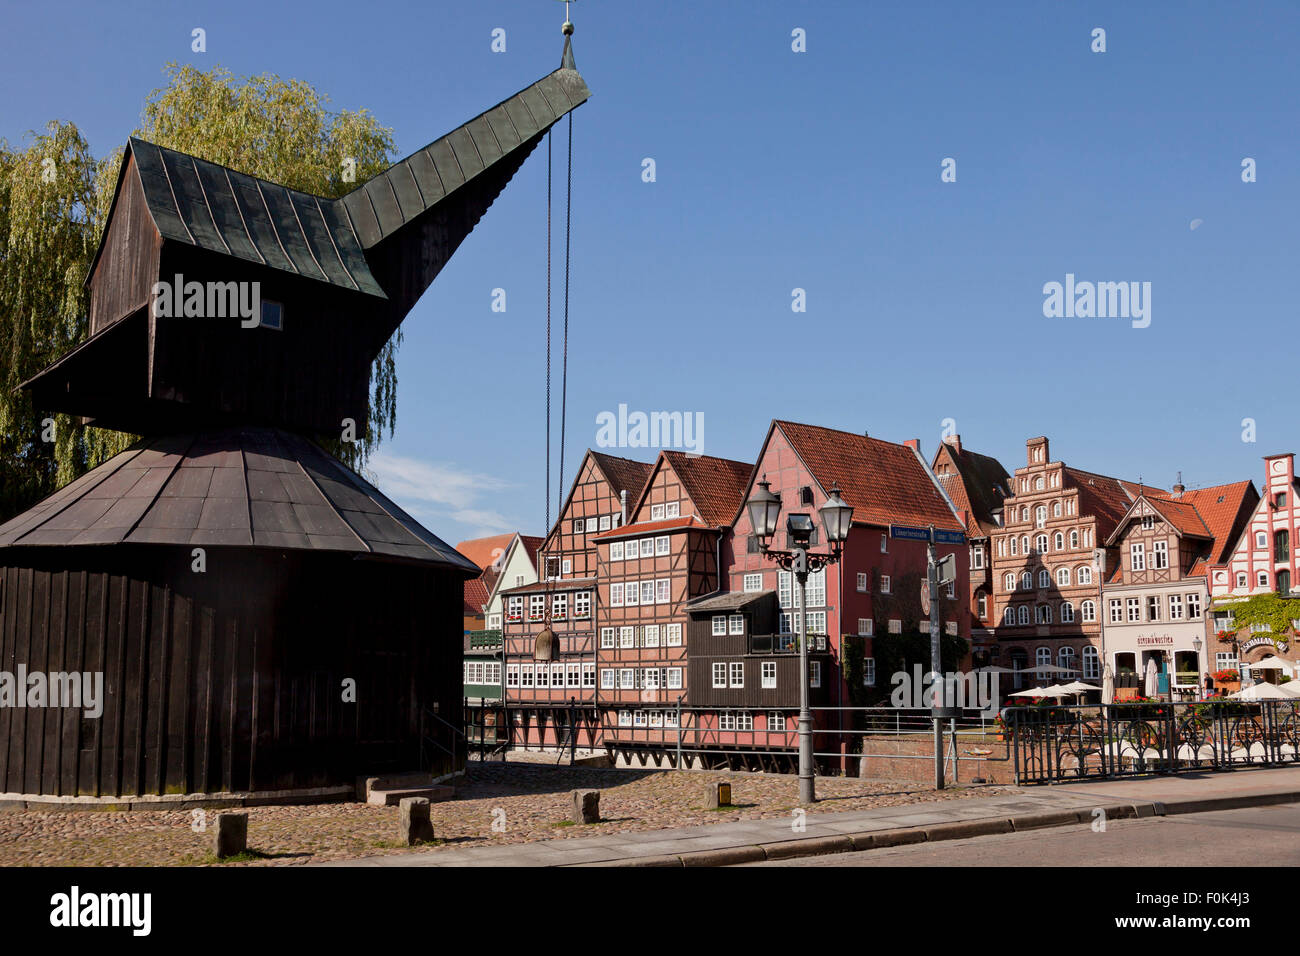 Stint Market and treadwheel crane, Hanseatic Town of Lüneburg, Lower Saxony, Germany - Stock Image